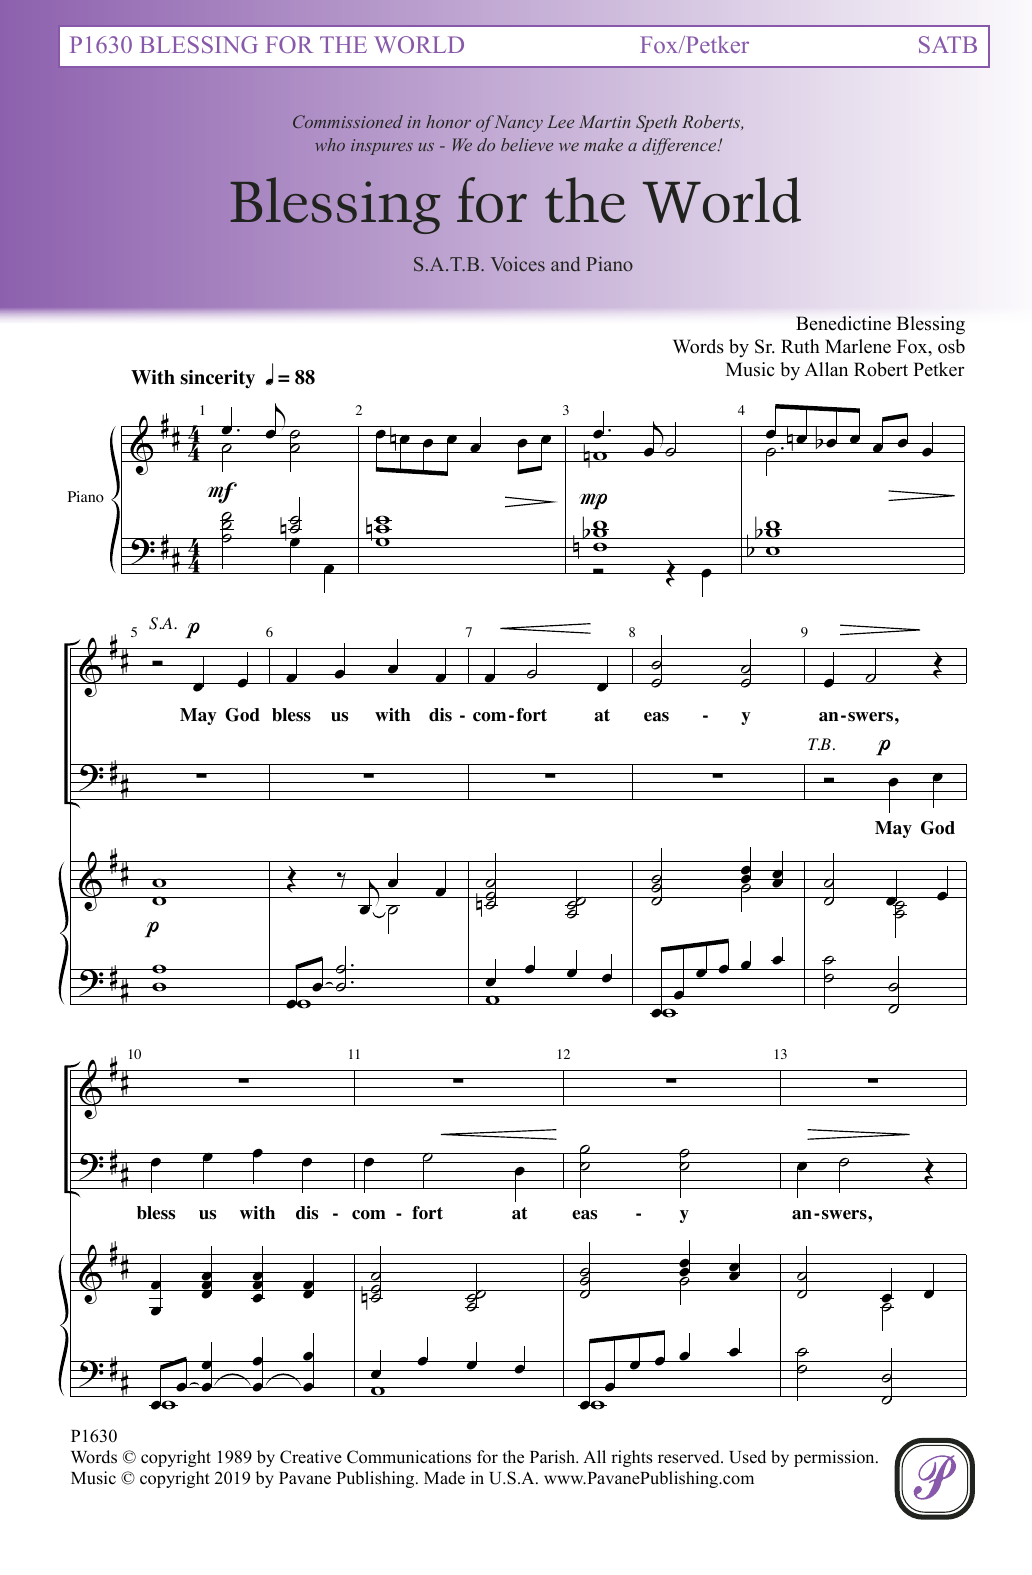 Sr. Ruth Marlene Fox and Allan Robert Petker Blessing For The World sheet music notes and chords. Download Printable PDF.